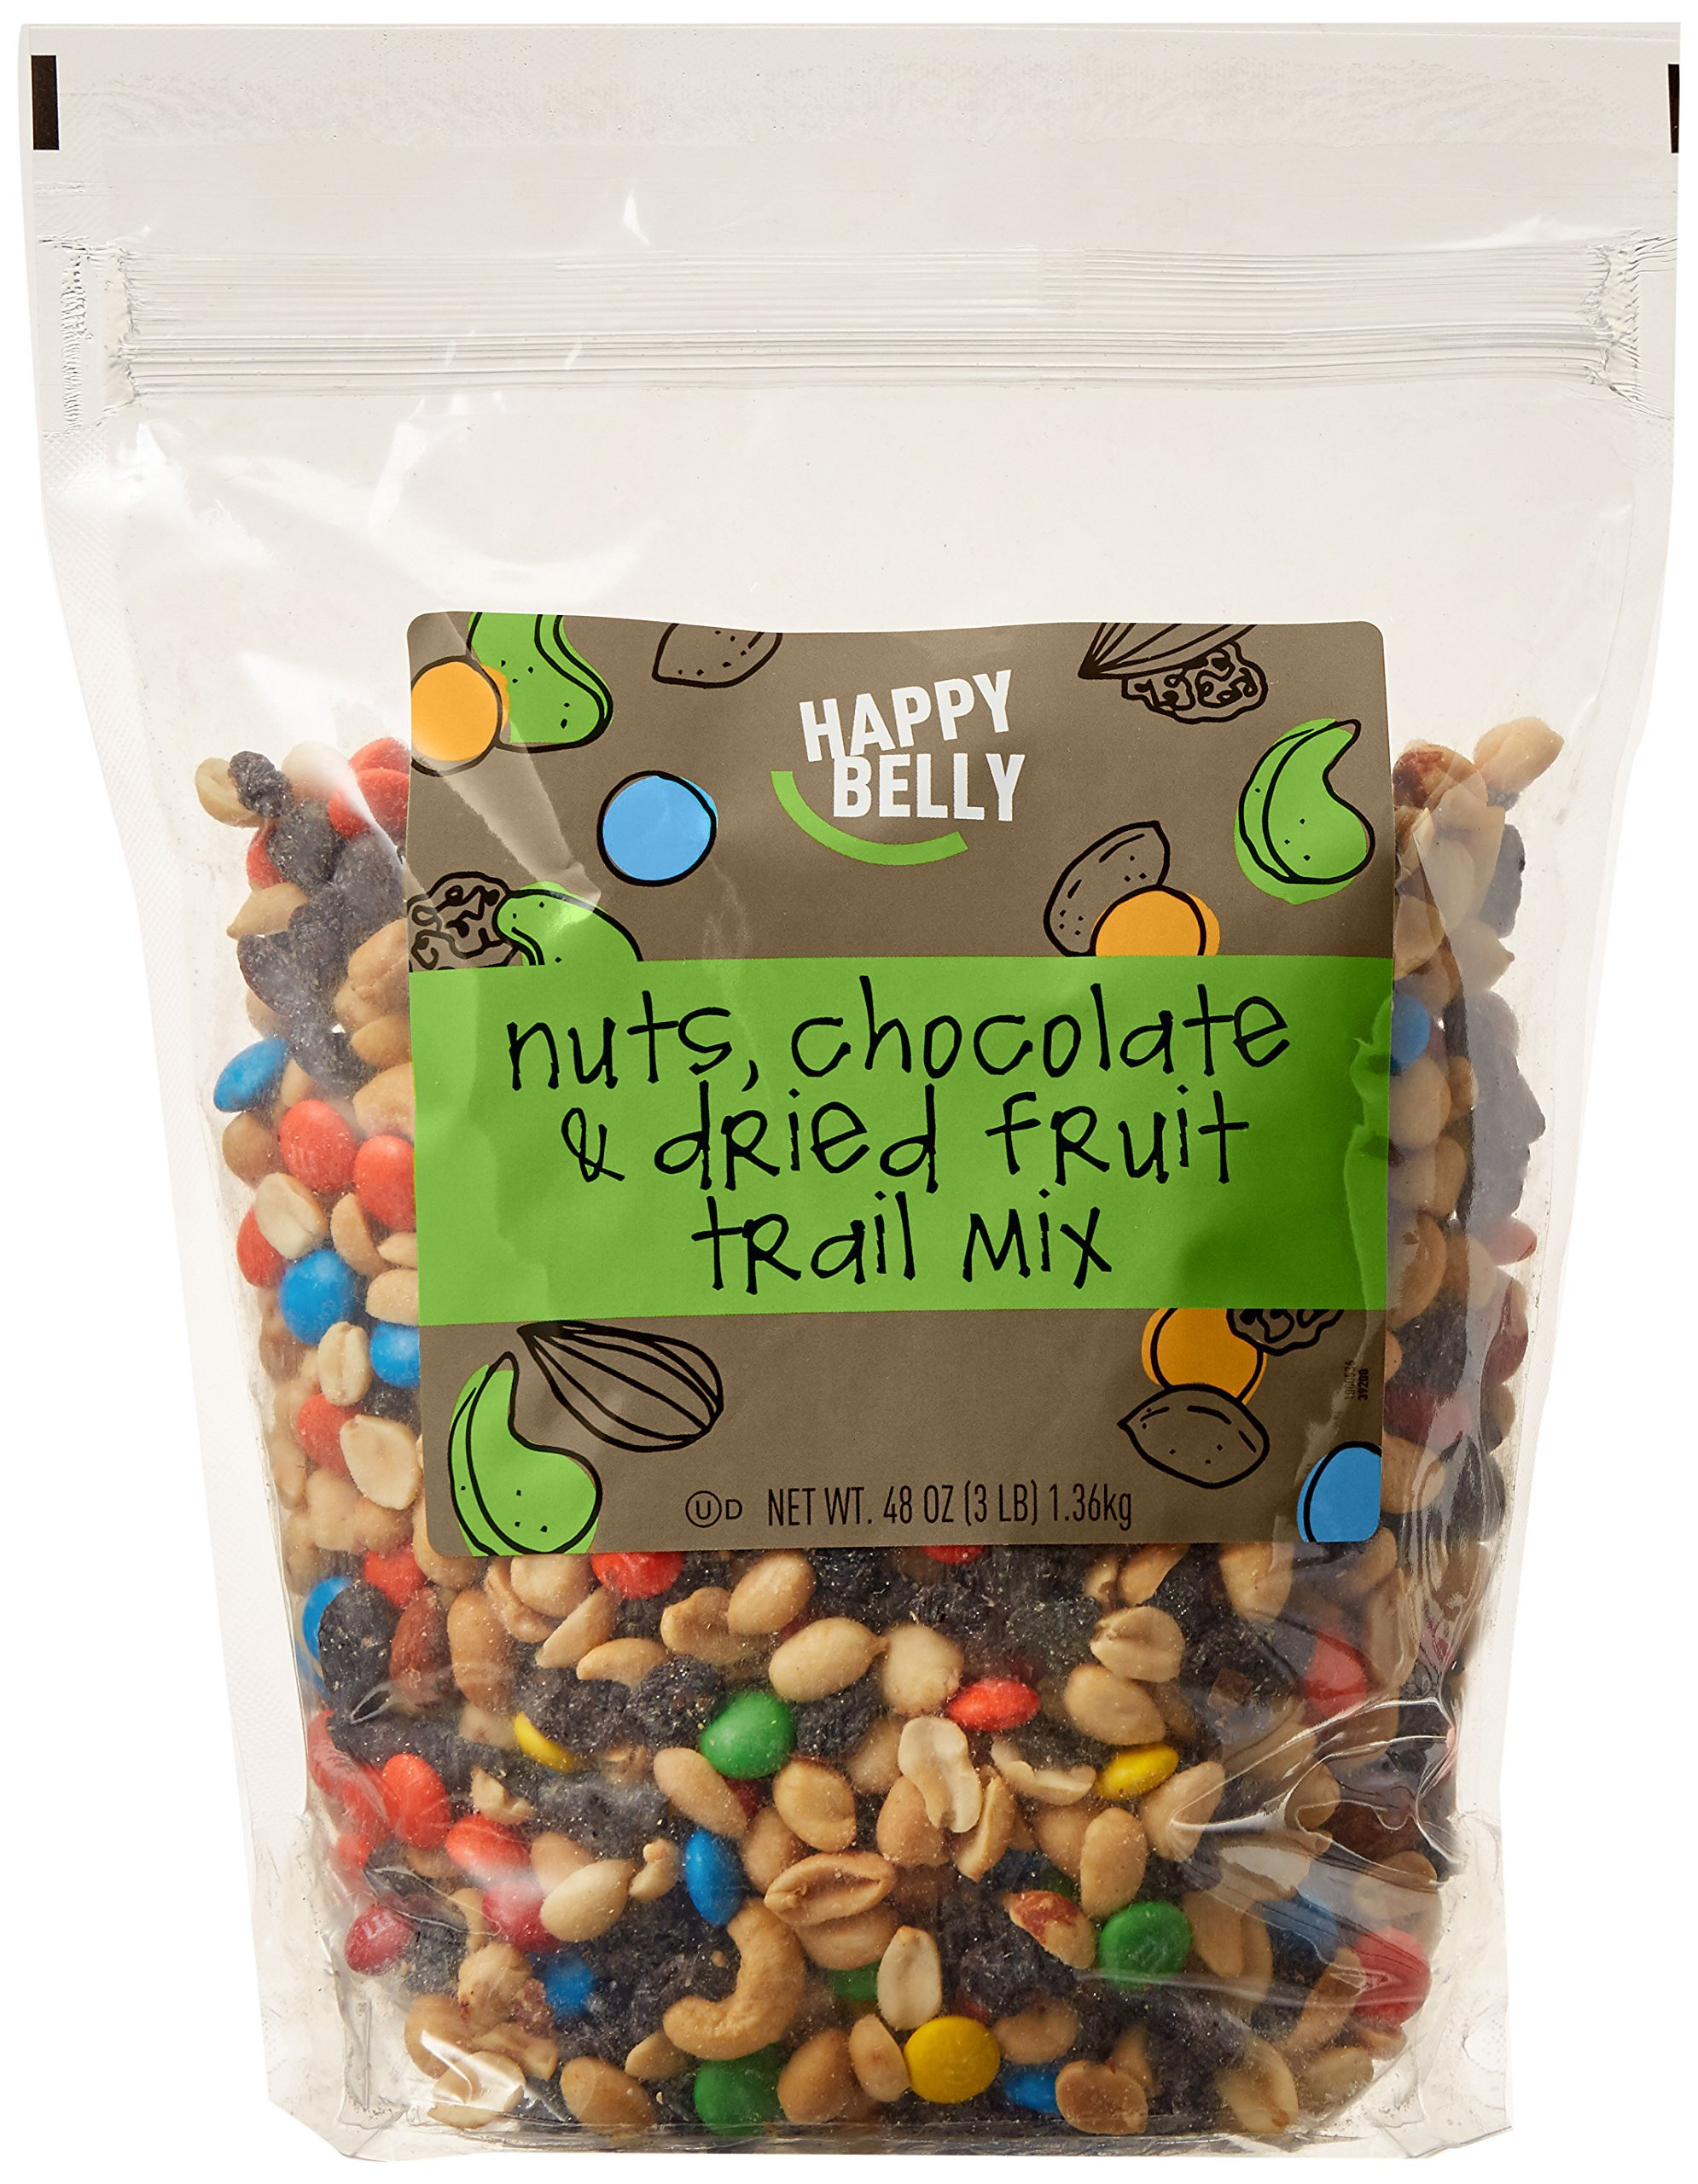 Amazon Brand - Happy Belly Amazon Brand Nuts, Chocolate & Dried Fruit Trail Mix, 48 ounce by Happy Belly (Image #1)